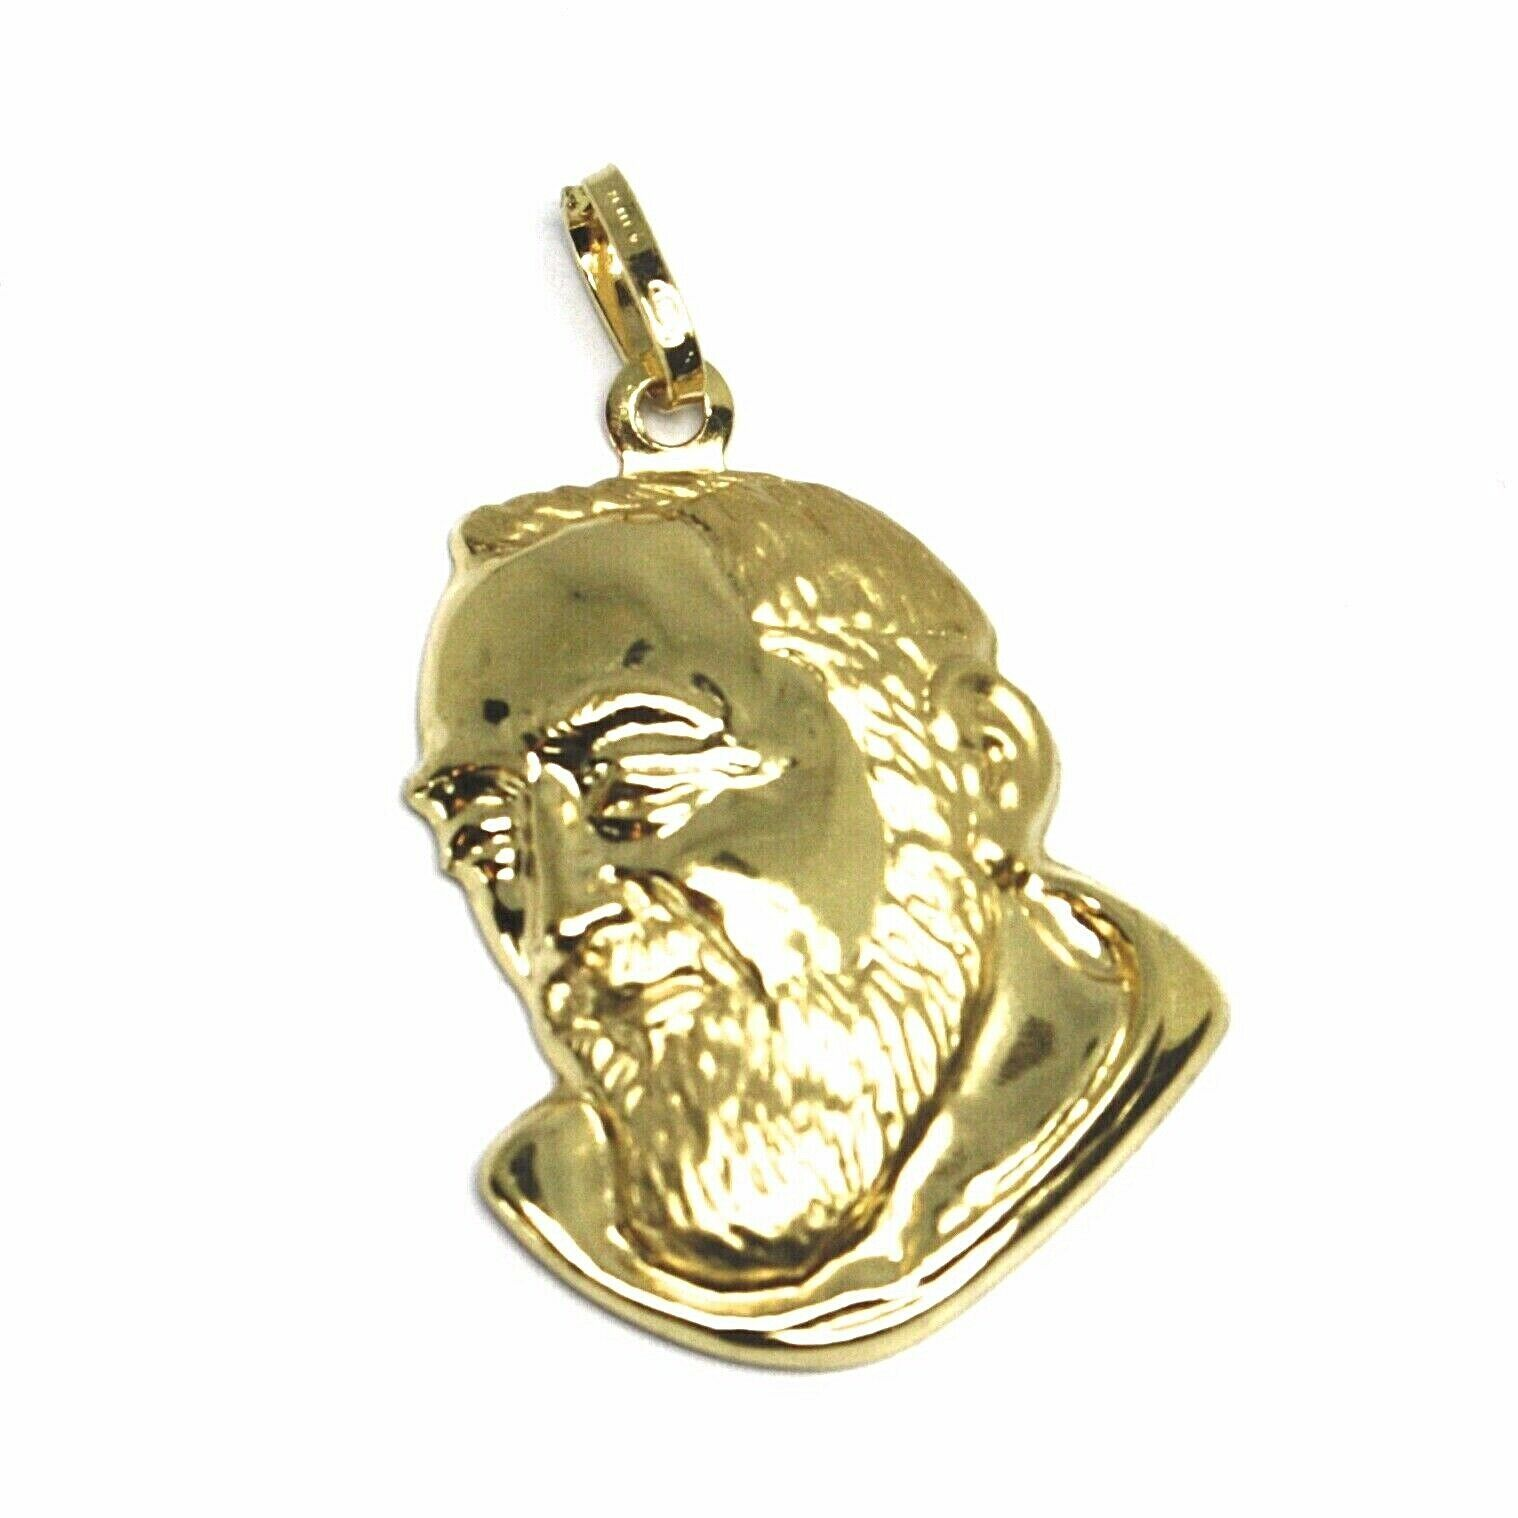 18K YELLOW GOLD PENDANT, SAINT PIO OF PIETRELCINA FACE, 26mm SATIN VERY DETAILED